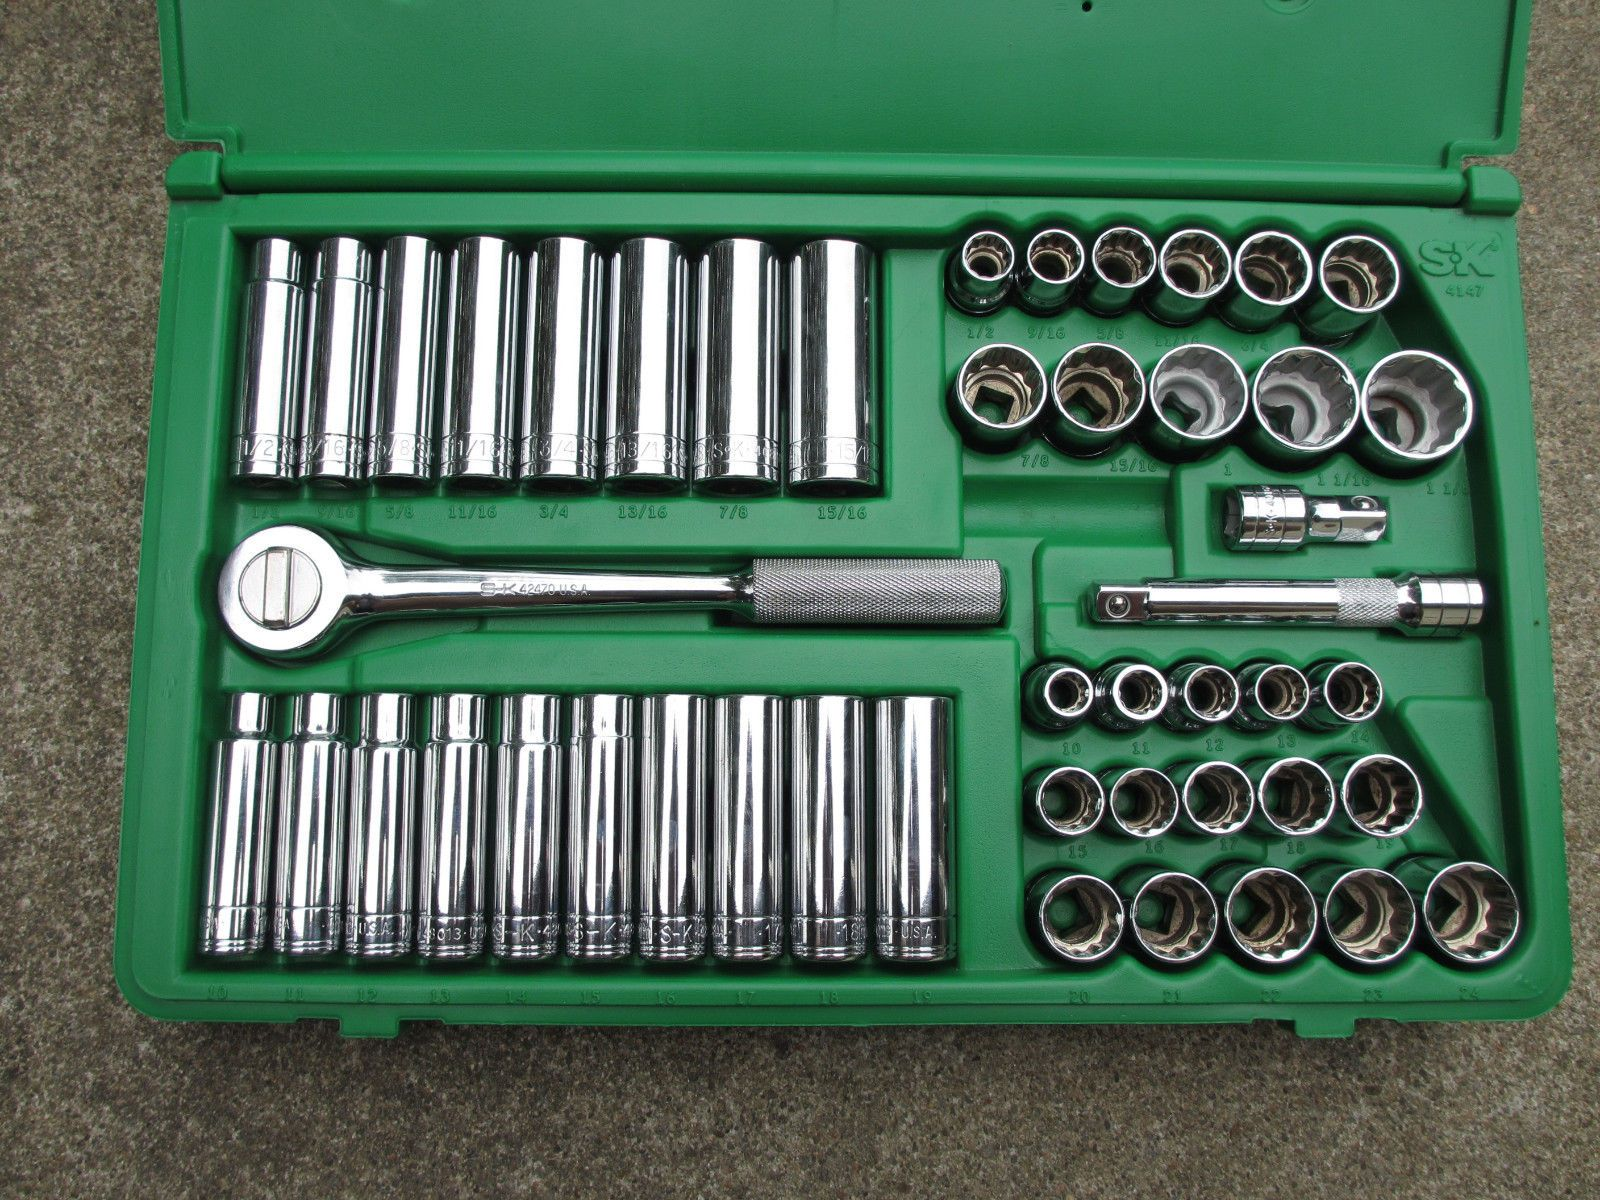 Gently Used Sk 4147 47 Piece 12 Point 1 2 Drive Socket Set In Good Condition. 9 16 Deep